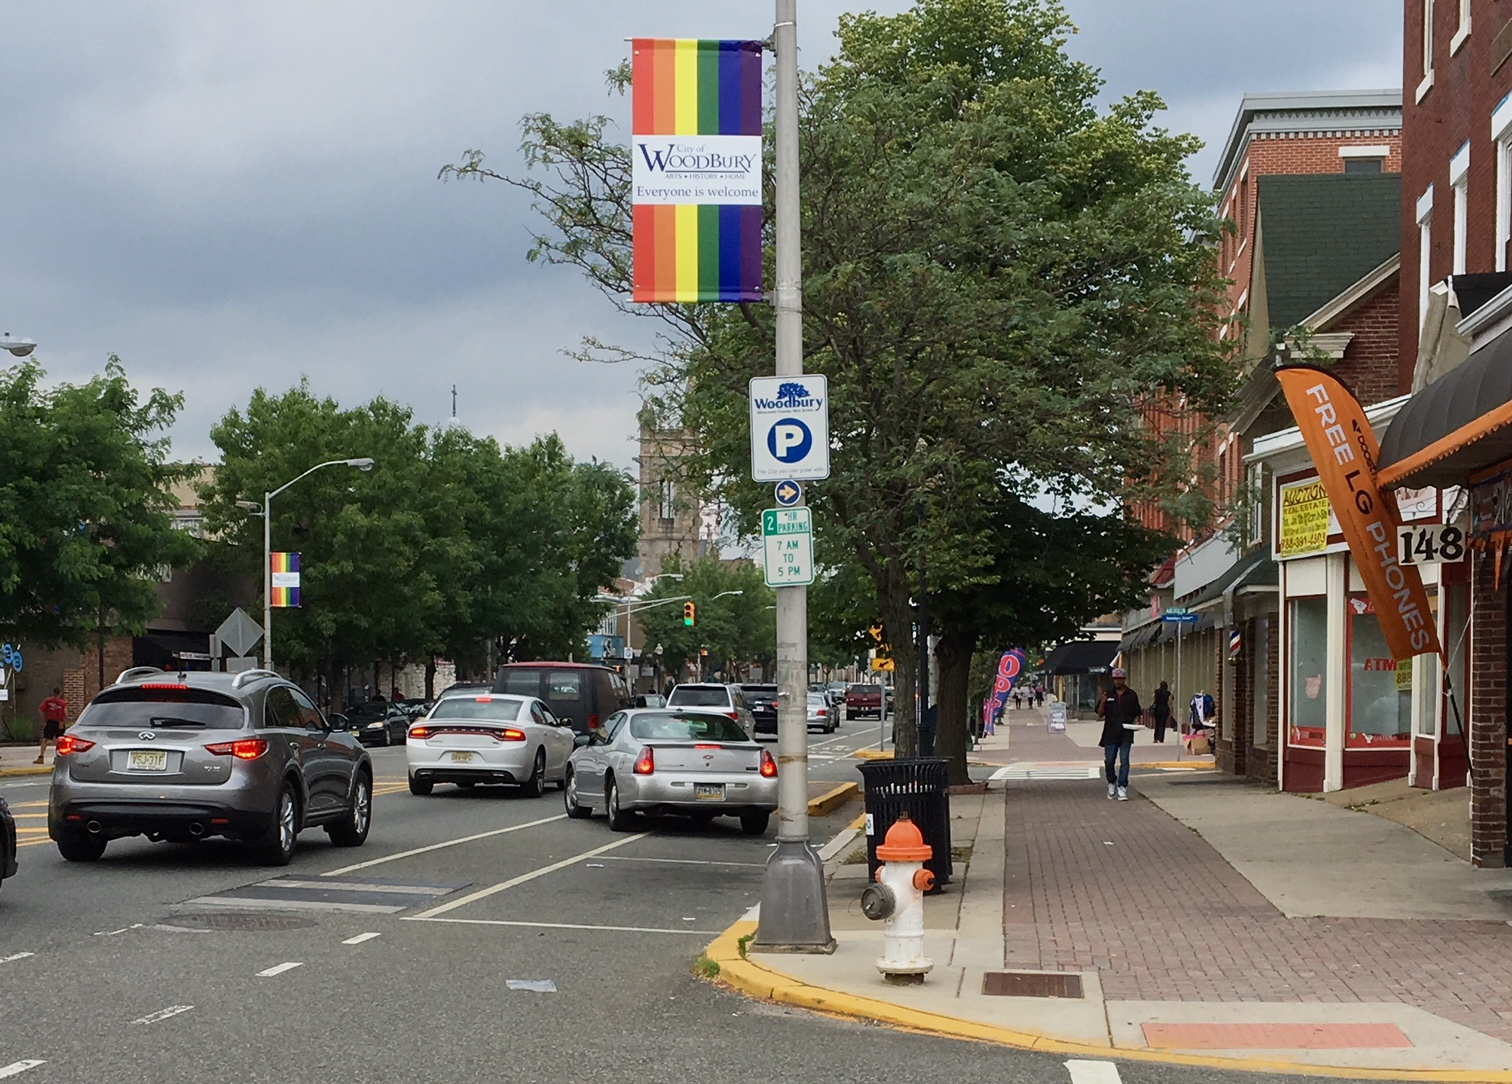 Pride banners along Broad Street in downtown Woodbury last summer showed the city´s support for LGBTQ equality.